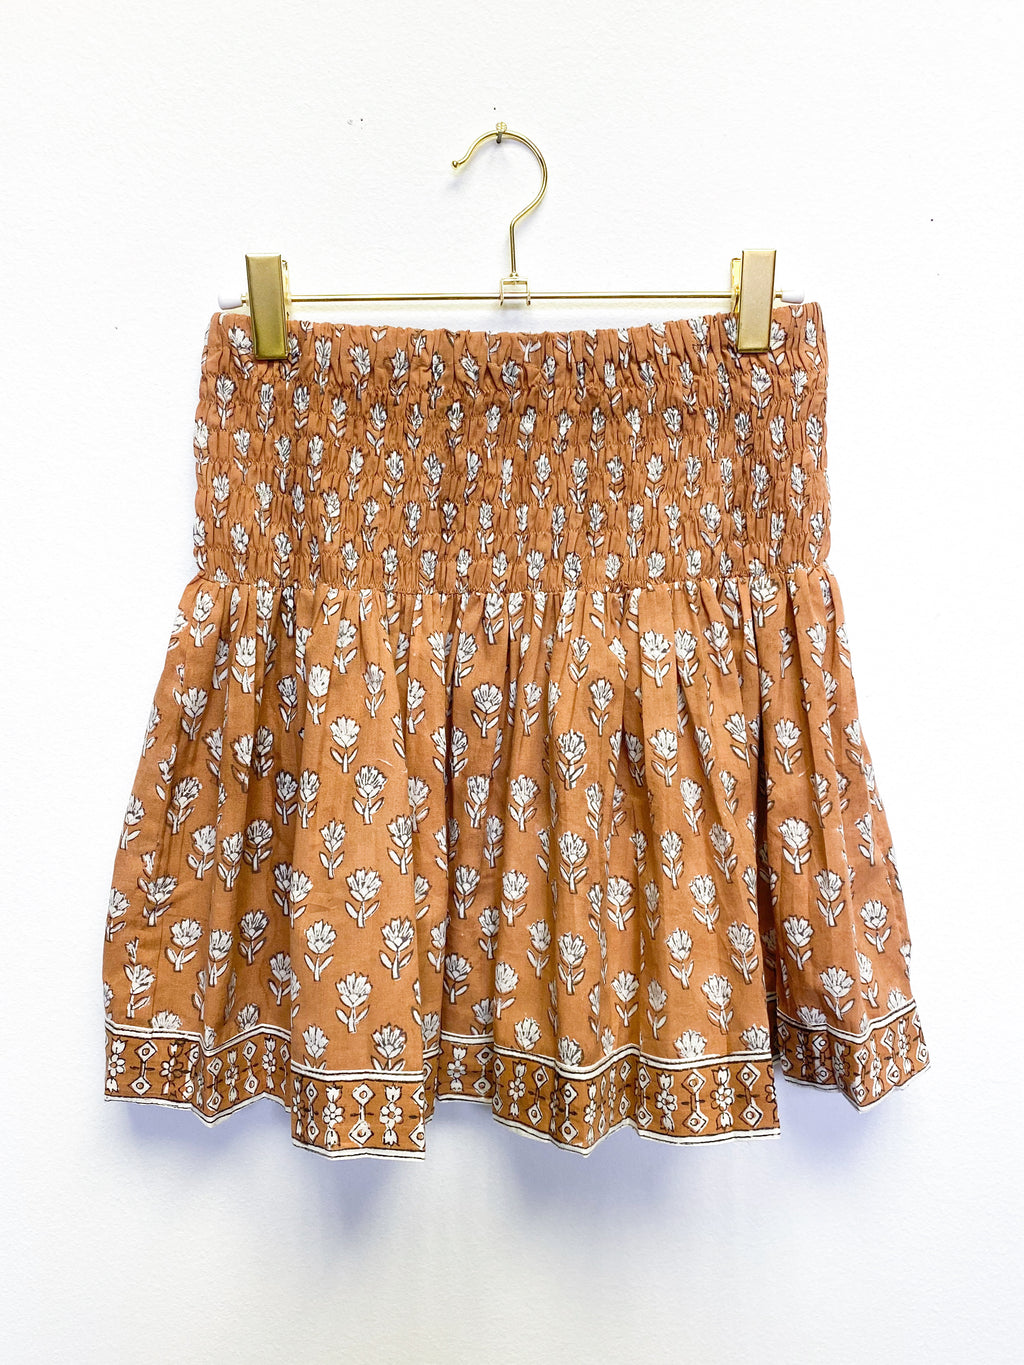 The BIRCH Mini Skirt